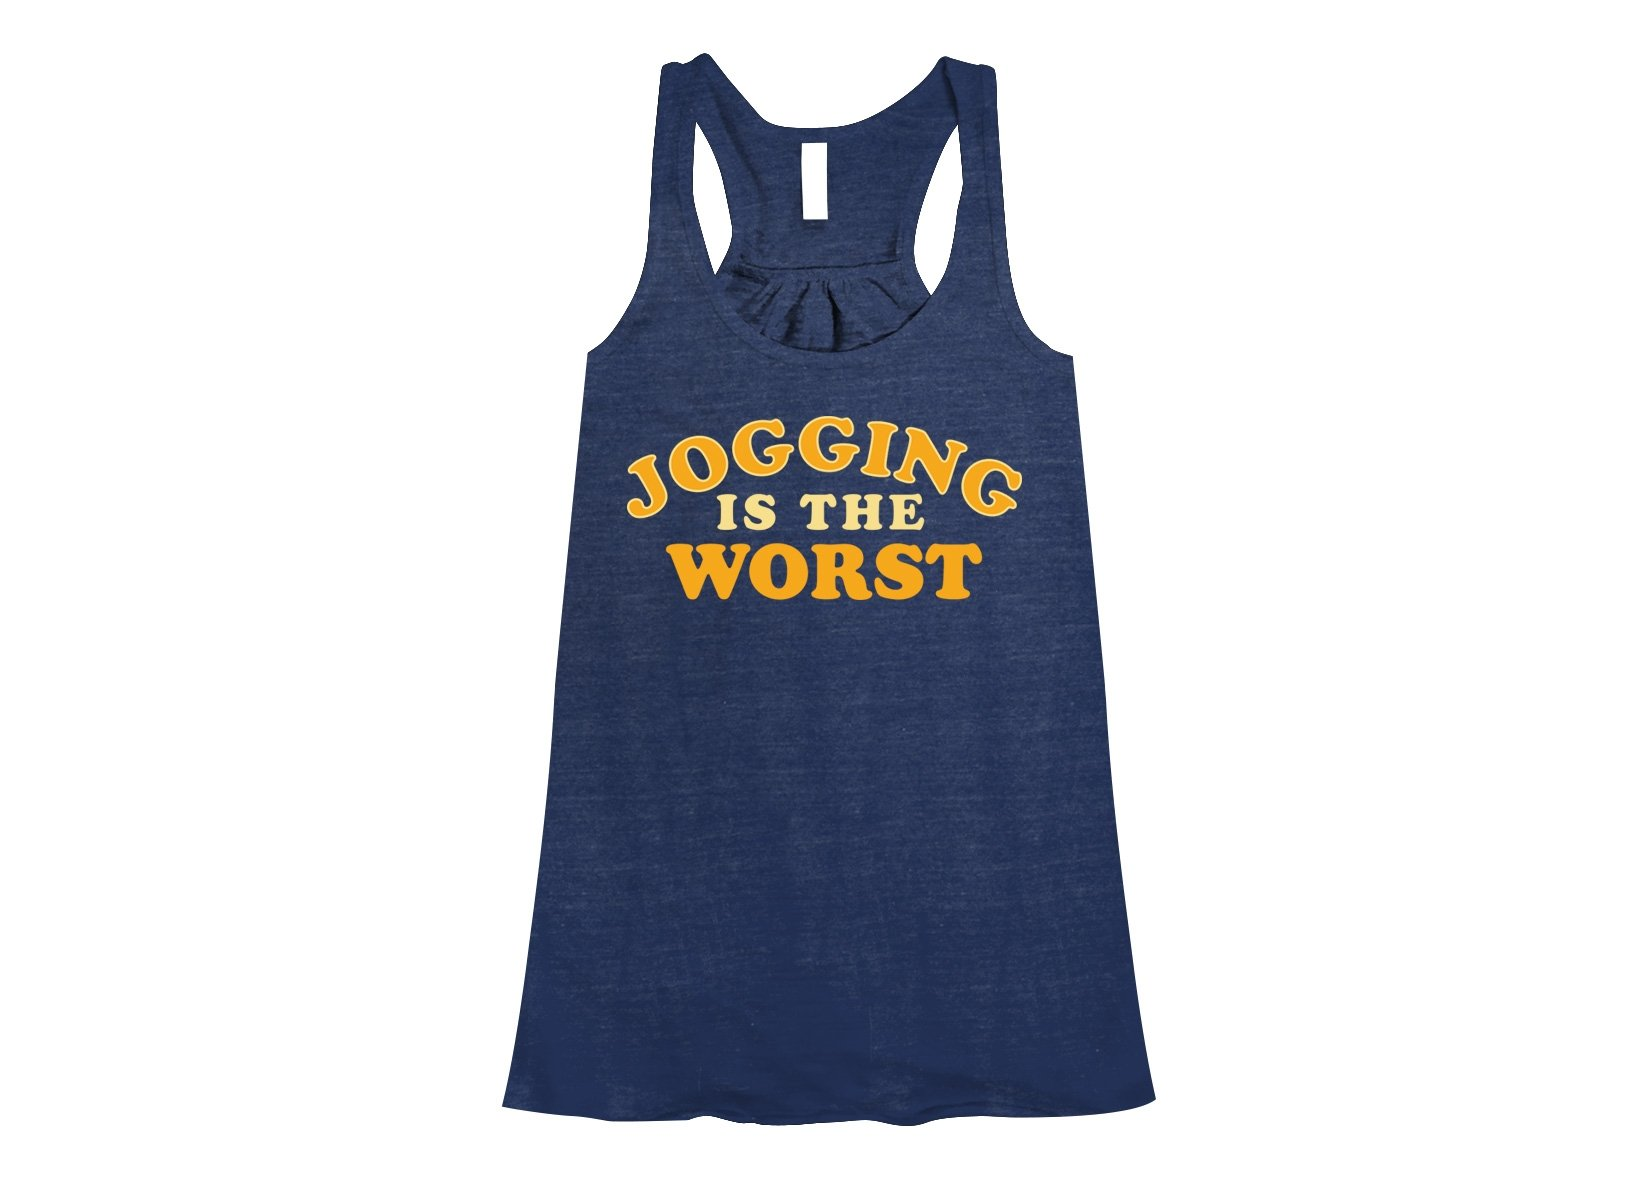 Jogging Is The Worst on Womens Tanks T-Shirt